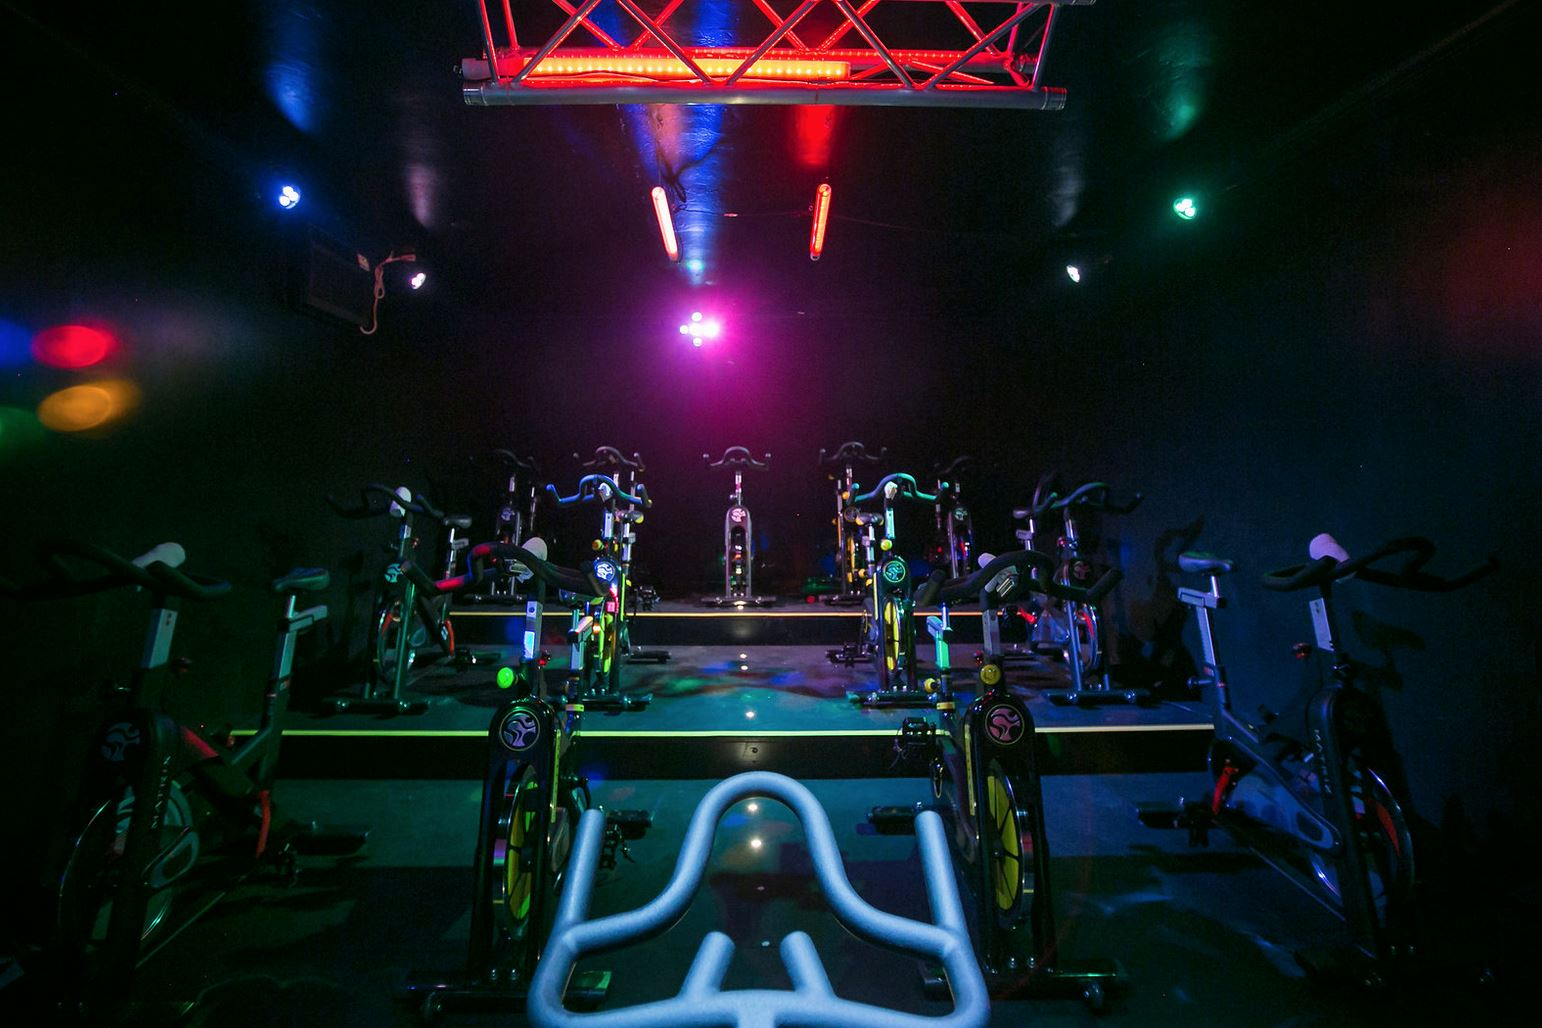 mad fitness spin studio